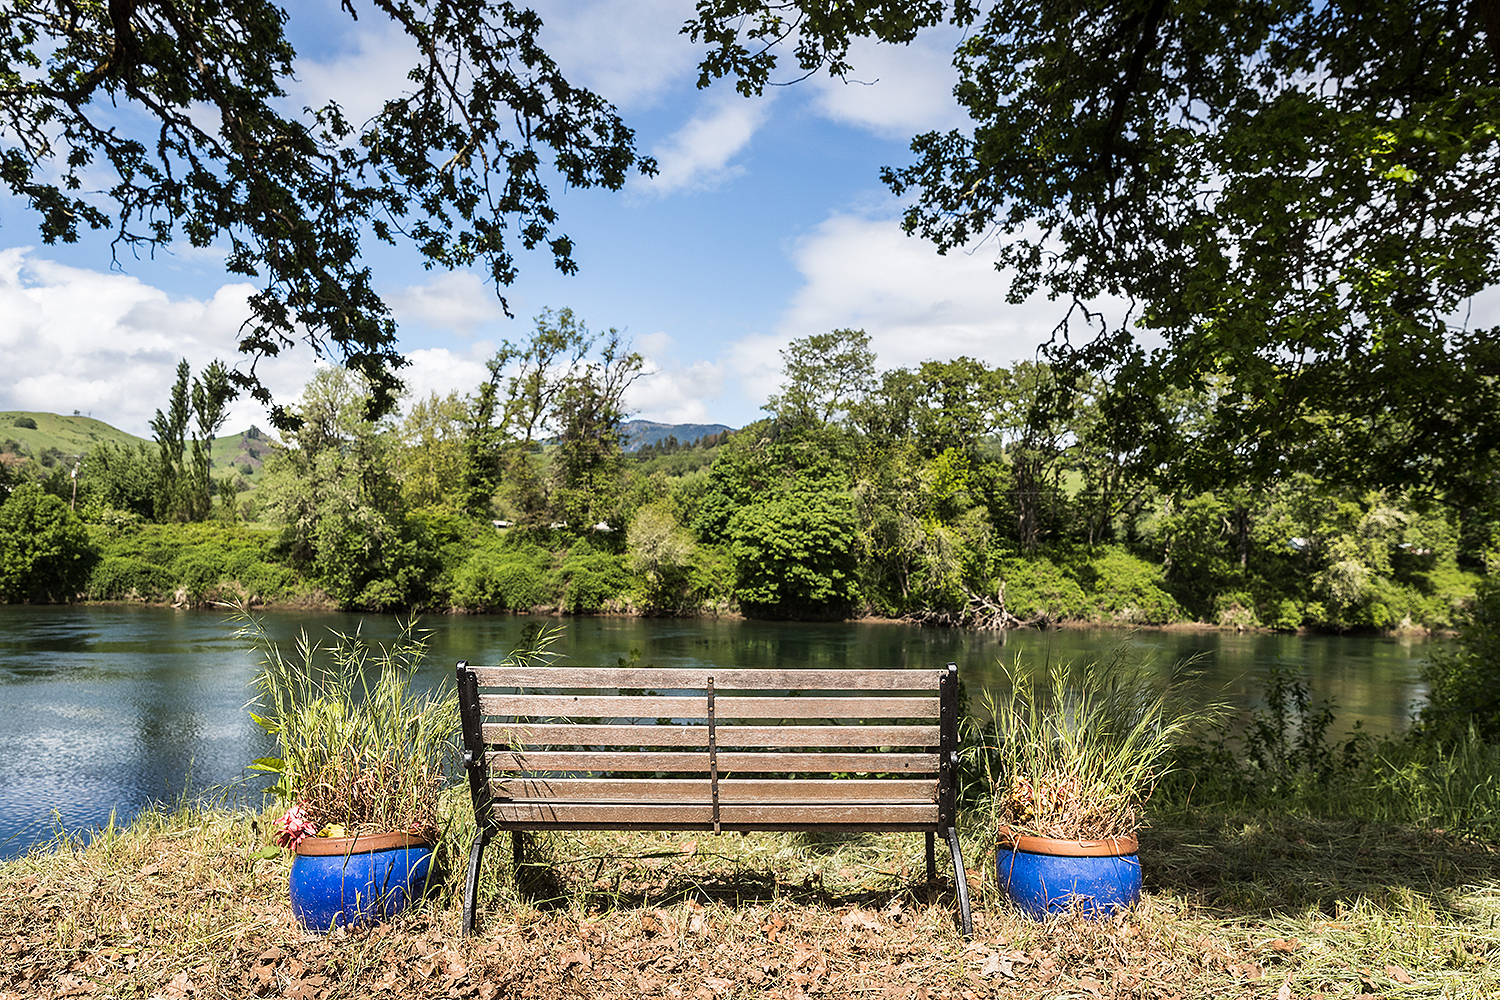 Day trippers can enjoy the view along Wild River Drive from a bench placed by a local homeowner.